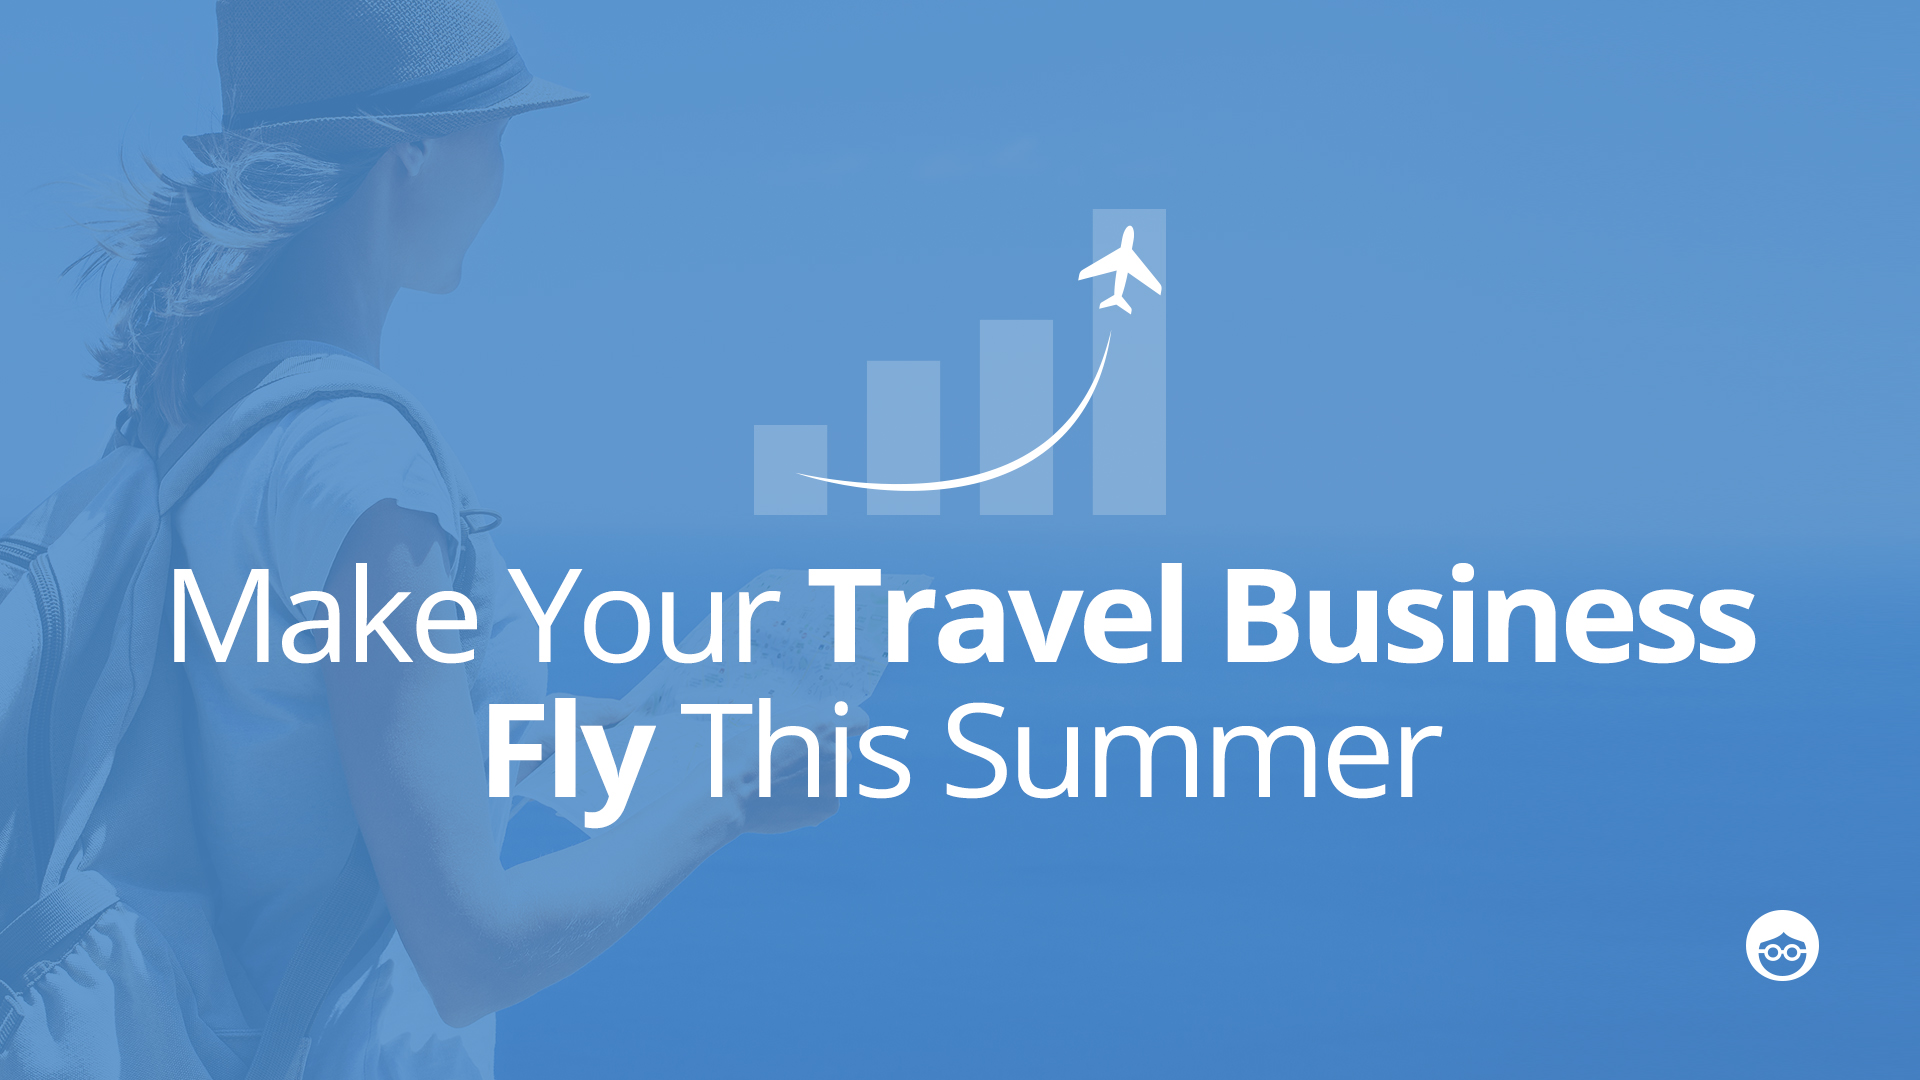 Travel content marketing